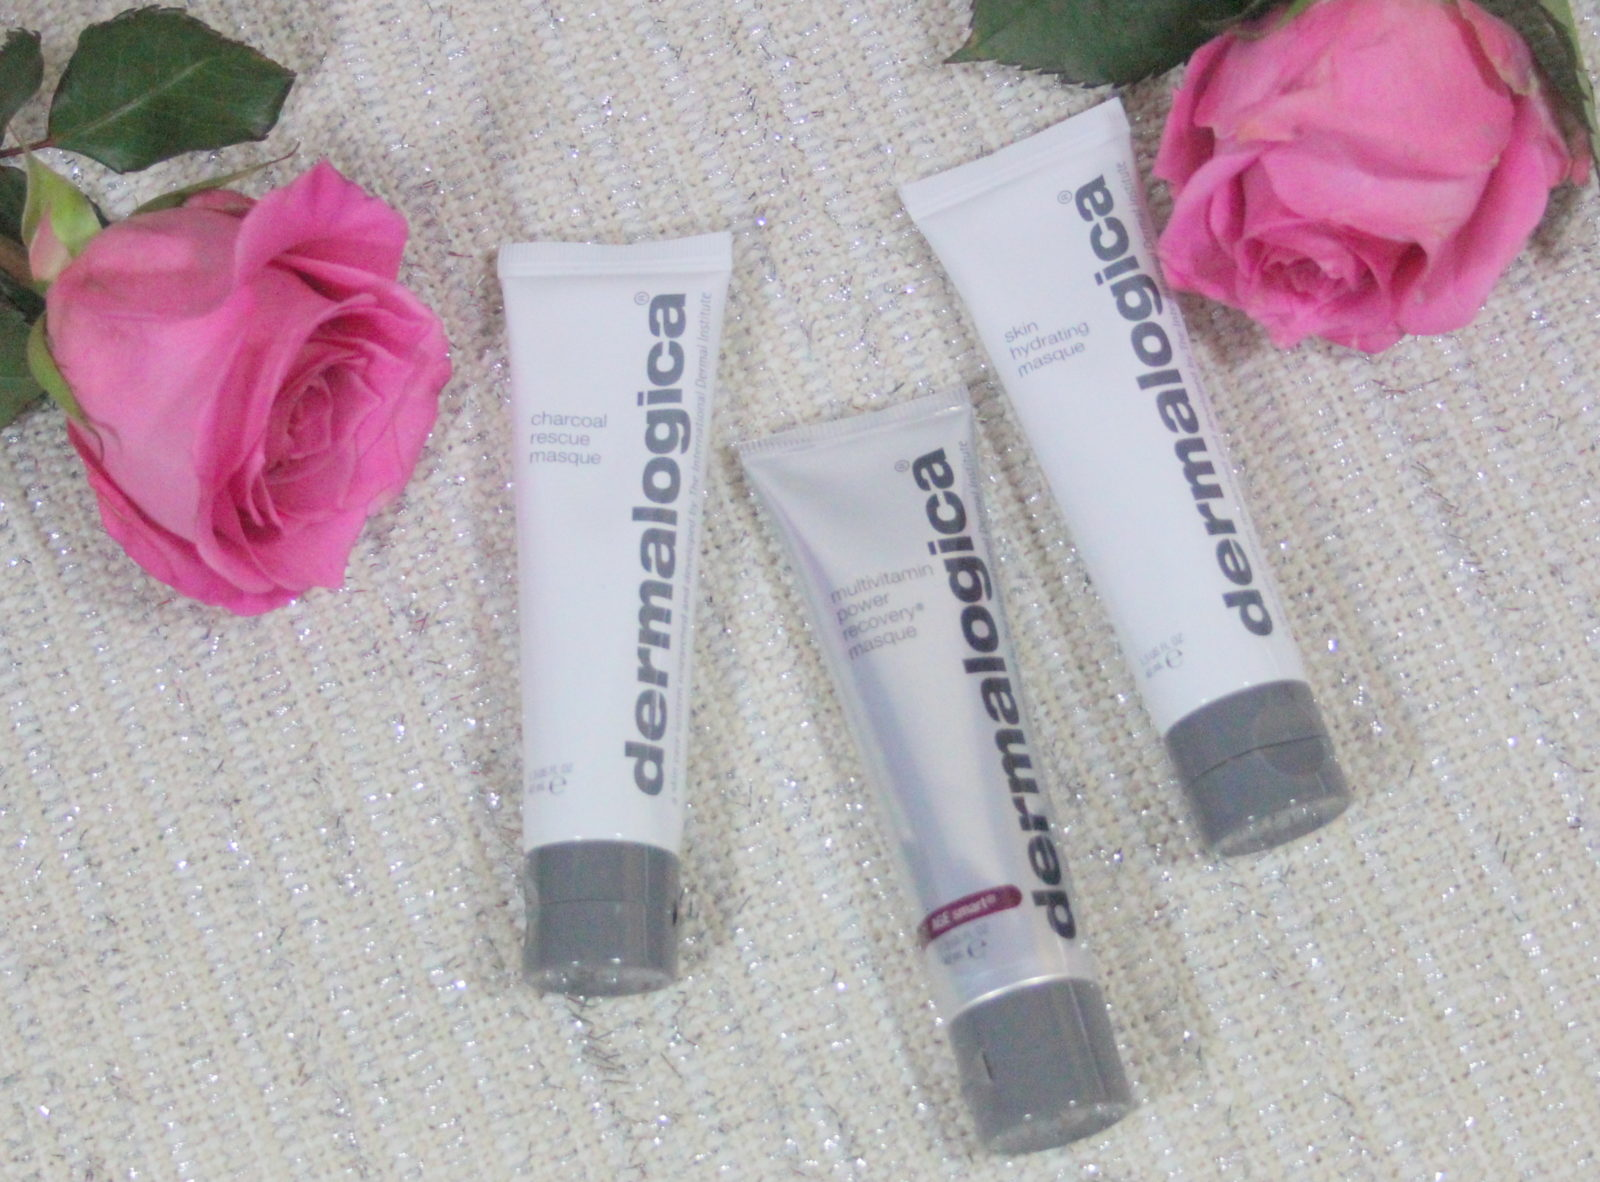 Dermalogica Power Rescue Masque Review